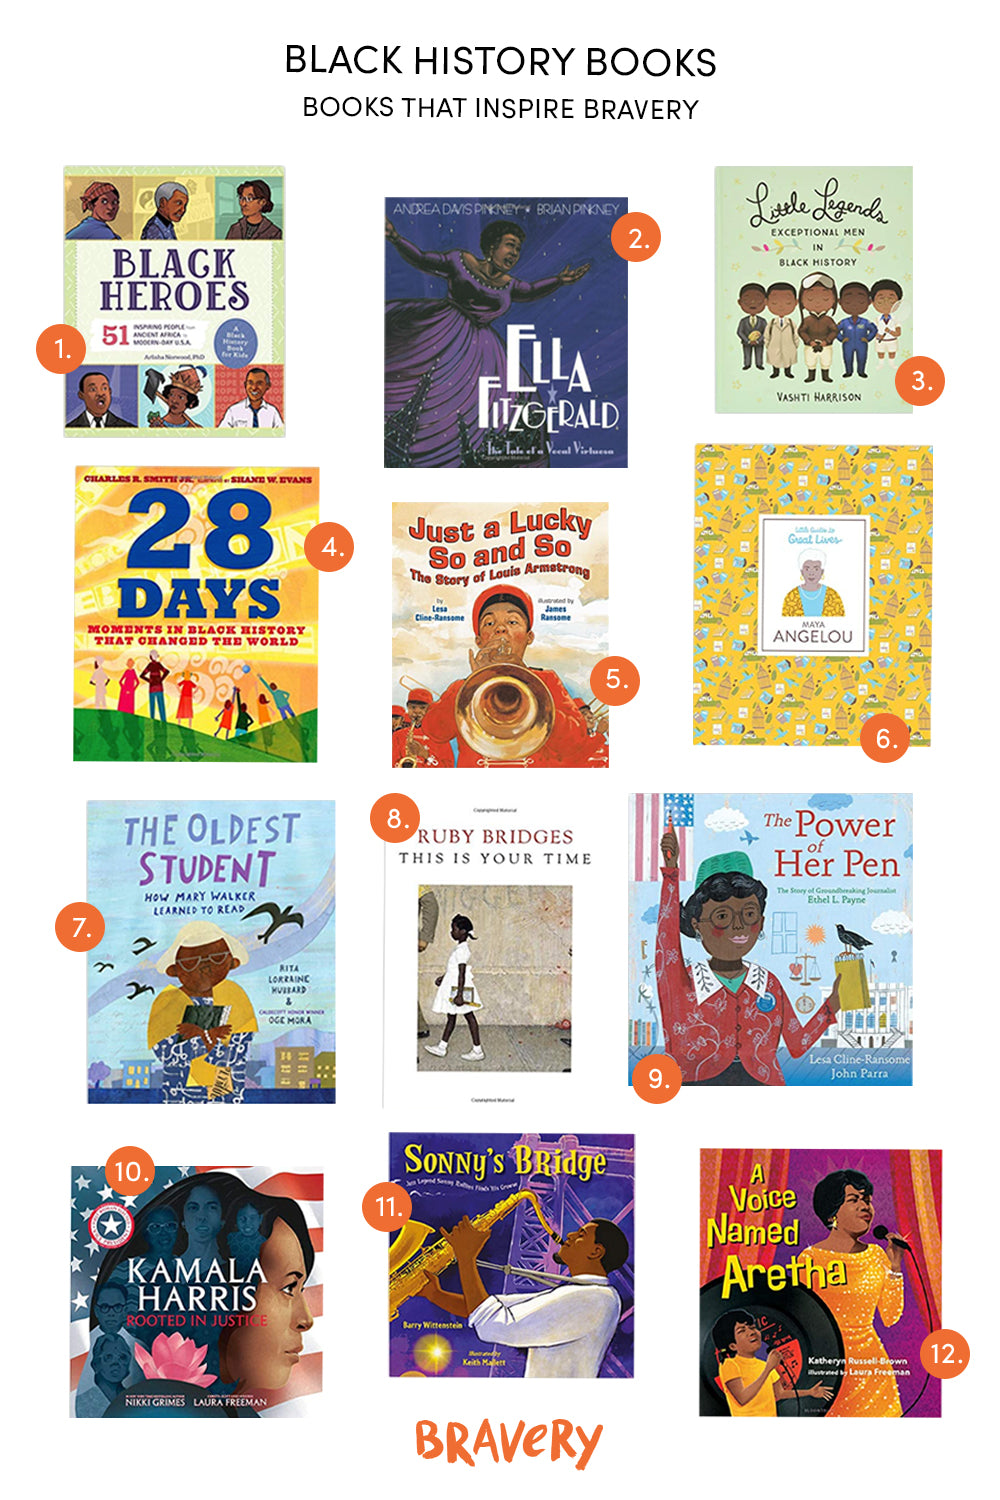 Bravery Black History book round up